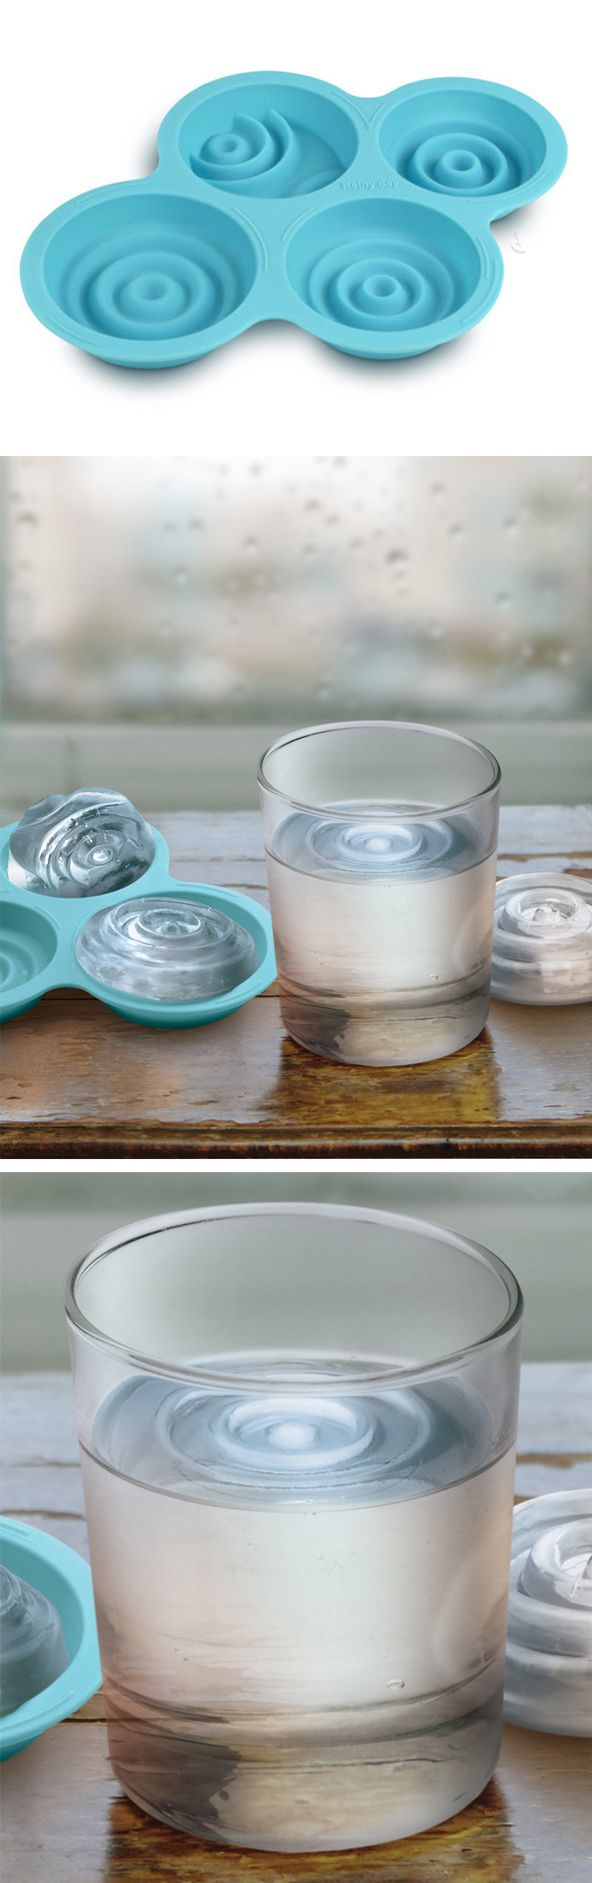 Rainy day ice mold #product_design This is so cool... haha I need to buy this mold.